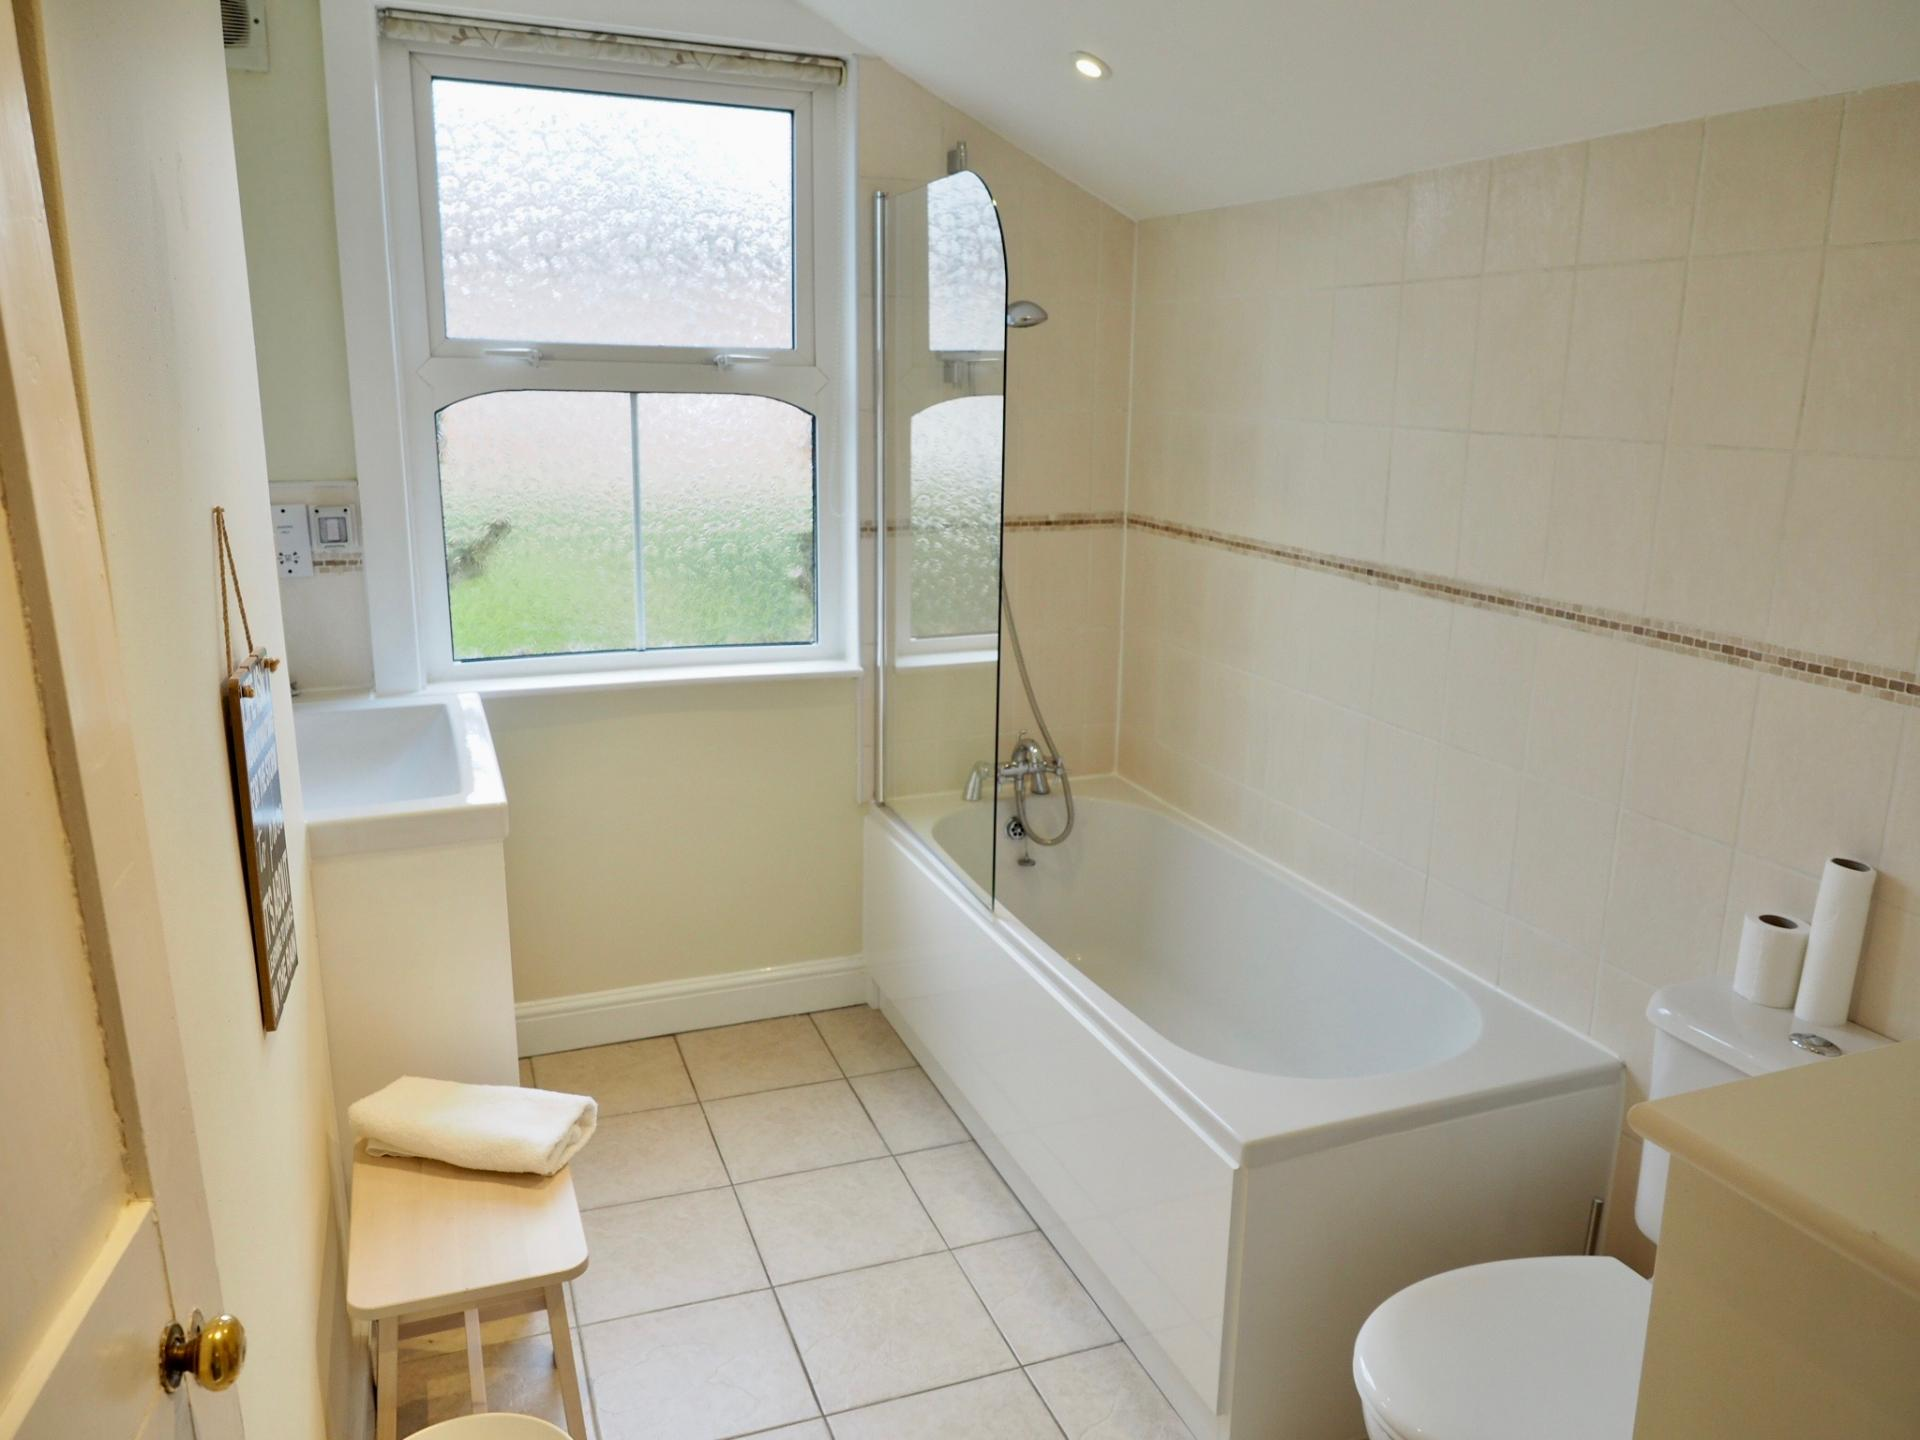 Bathroom at Gordon Street House, Centre, Leamington Spa